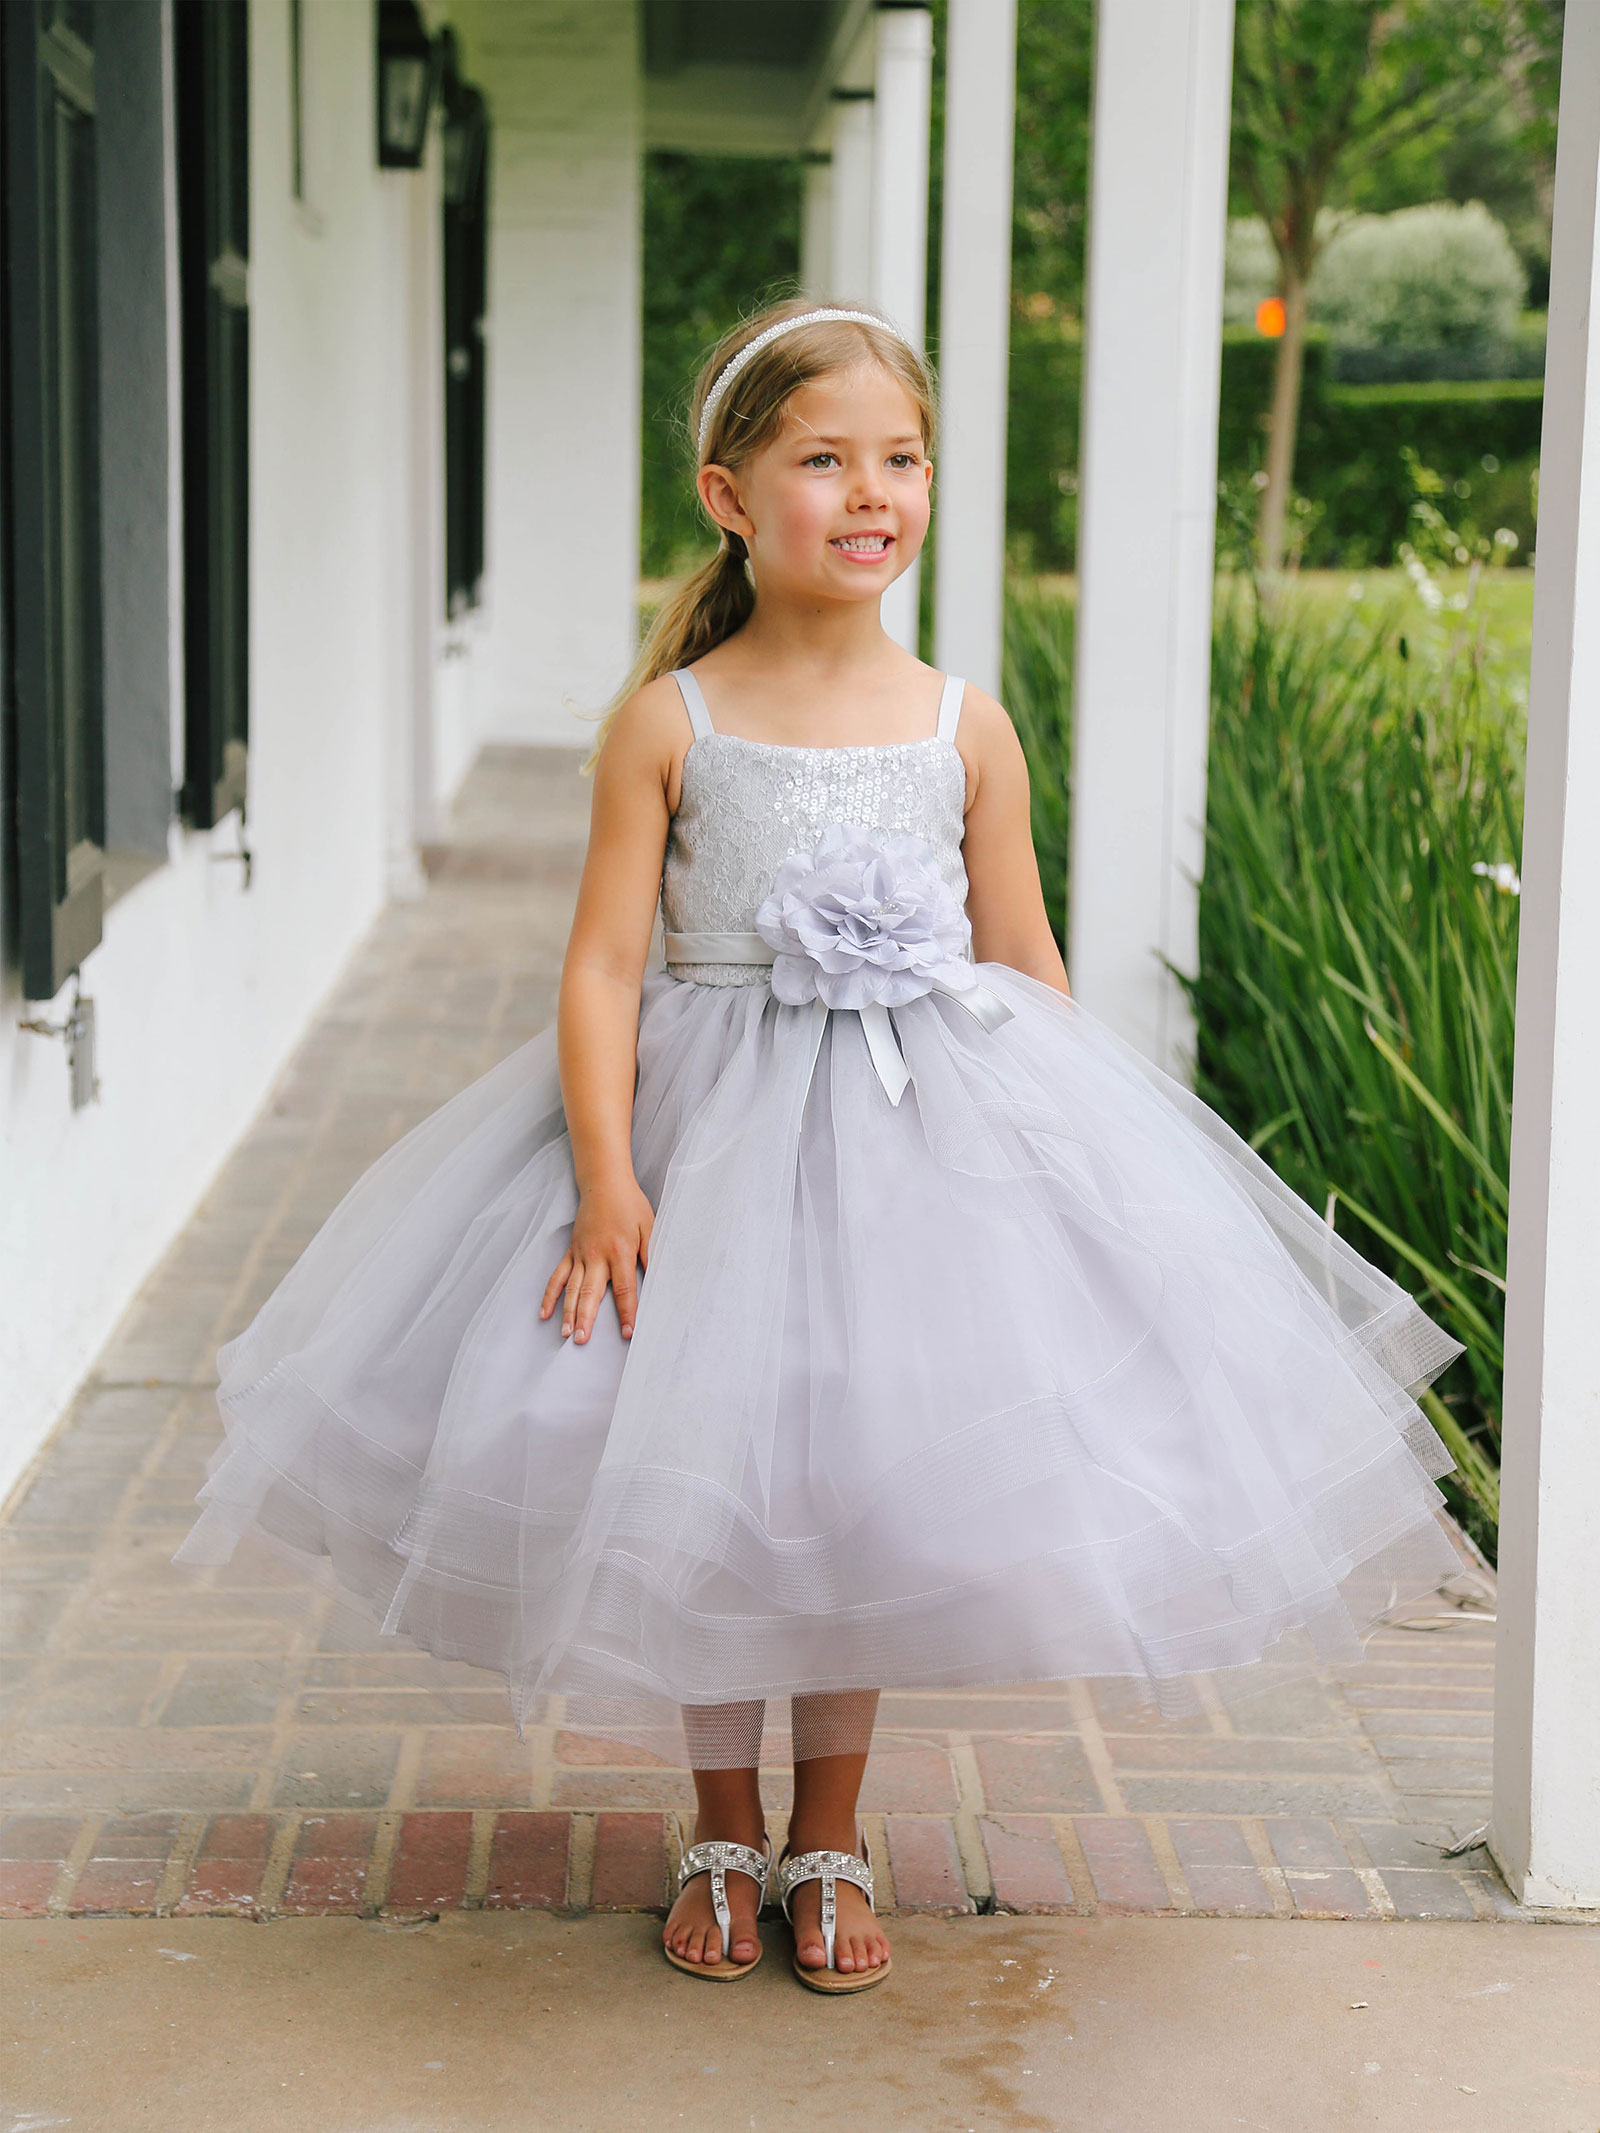 TT 5662GY Girls Dress Style 5662 In Choice of Color Silver Grays Flowe